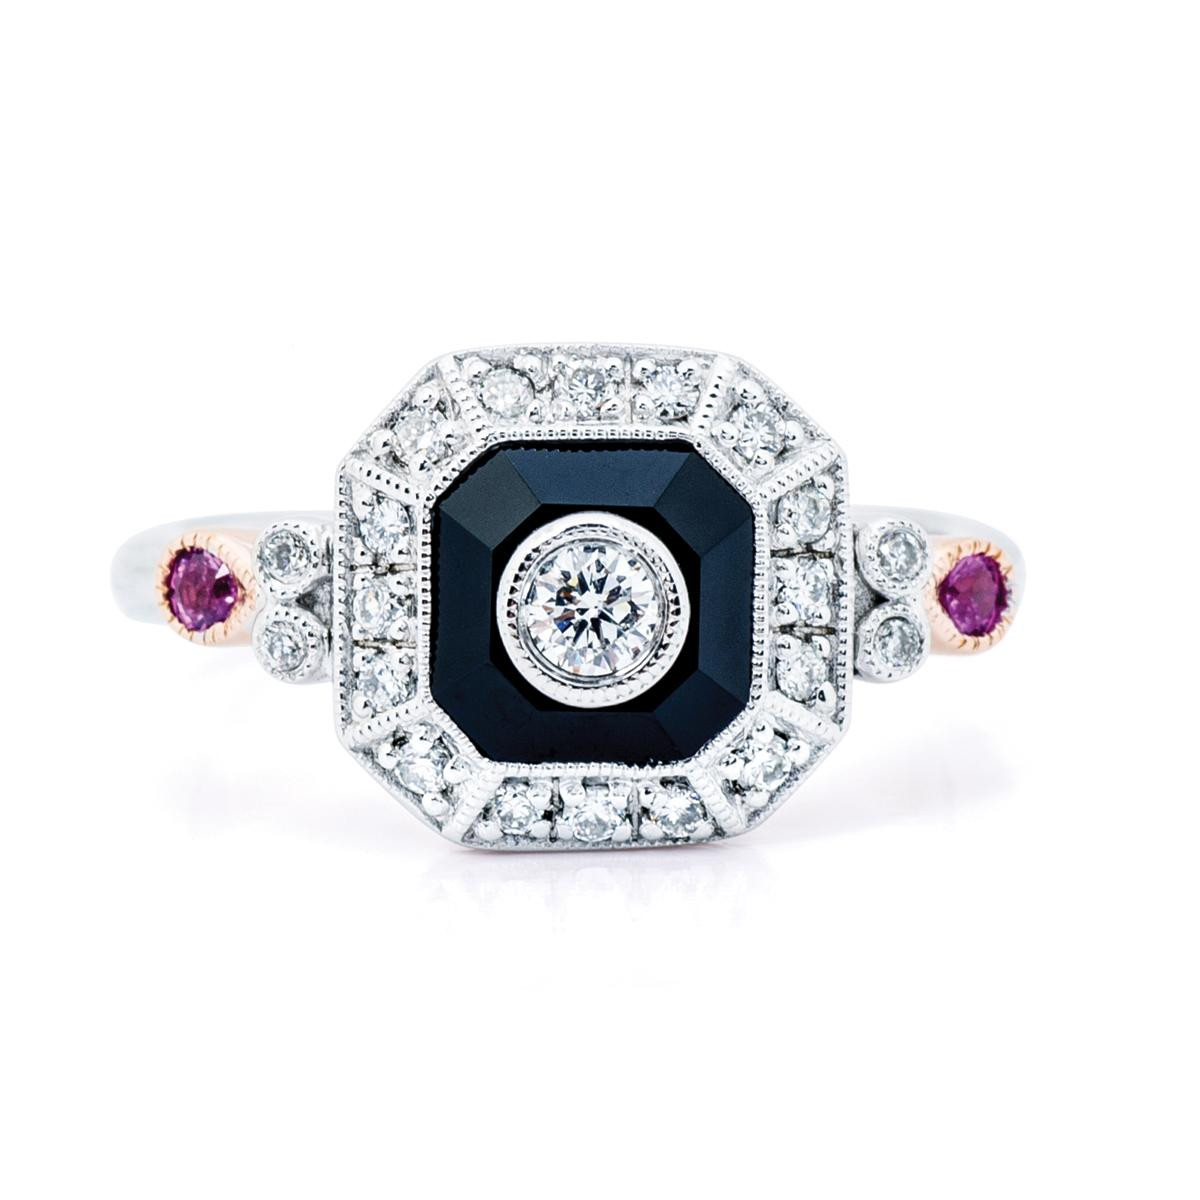 Vintage Diamond, Onyx and Pink Sapphire Ring